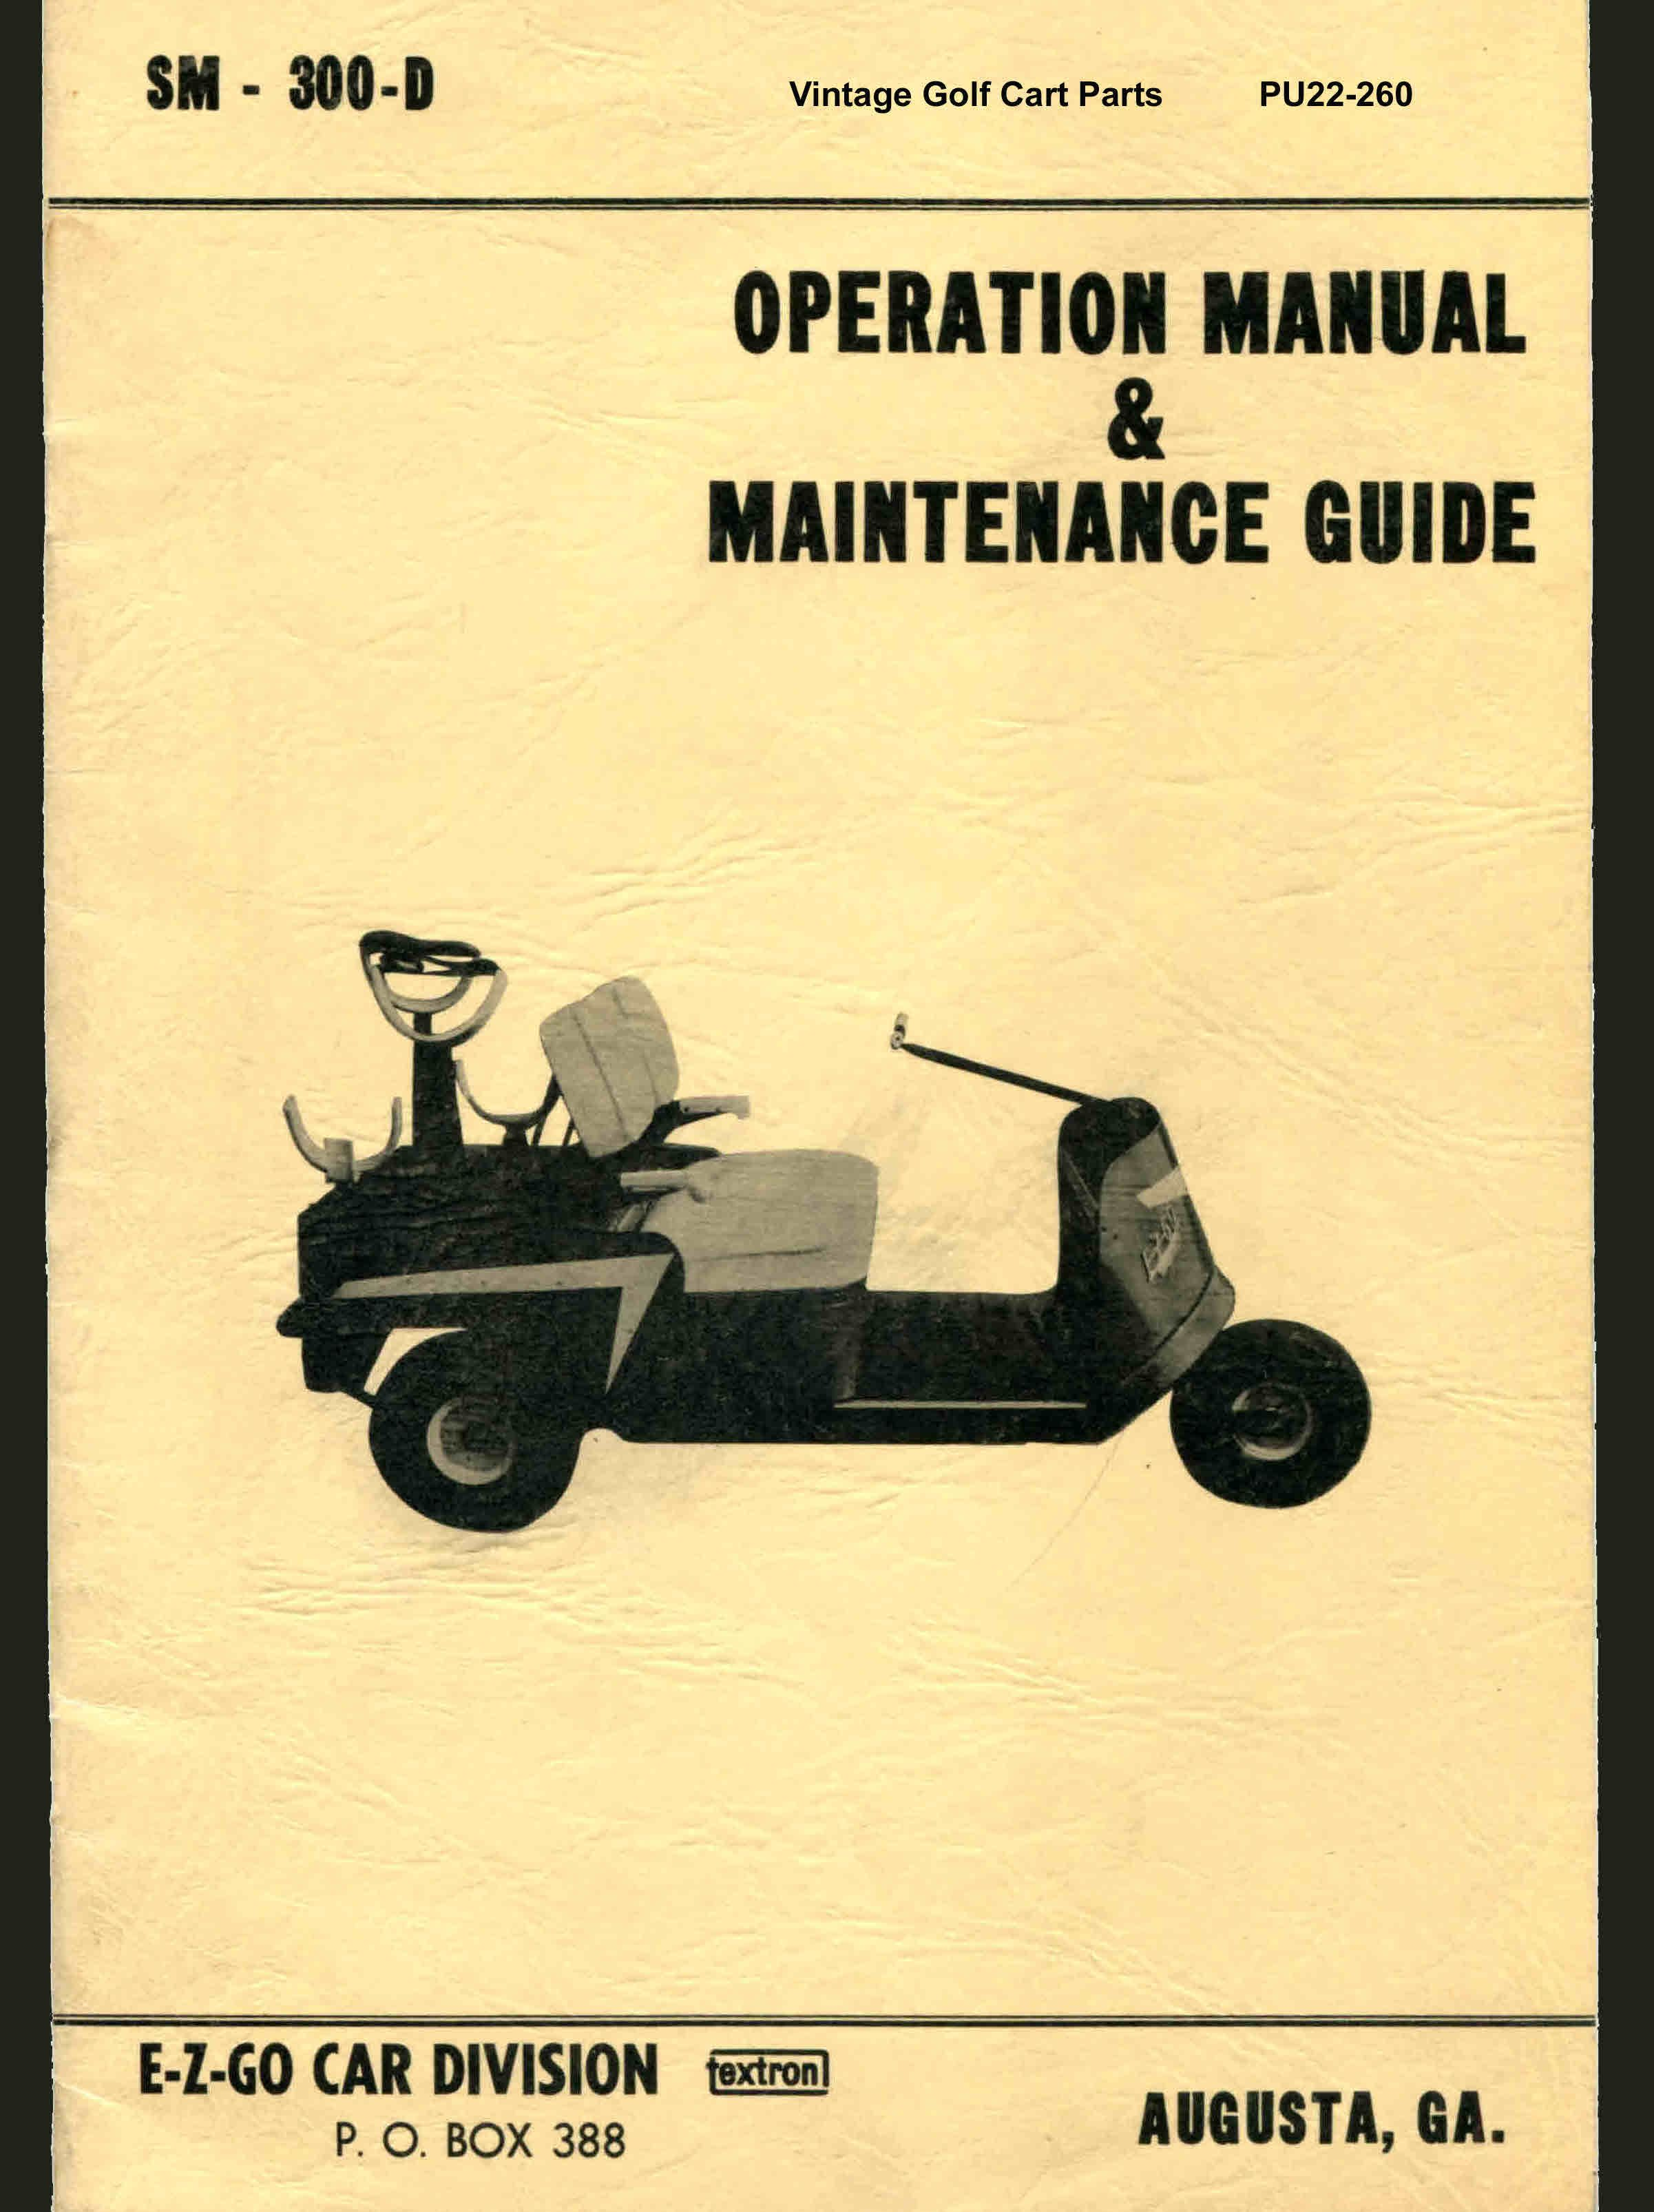 PU22-260 - Operation & Maintenance Manual